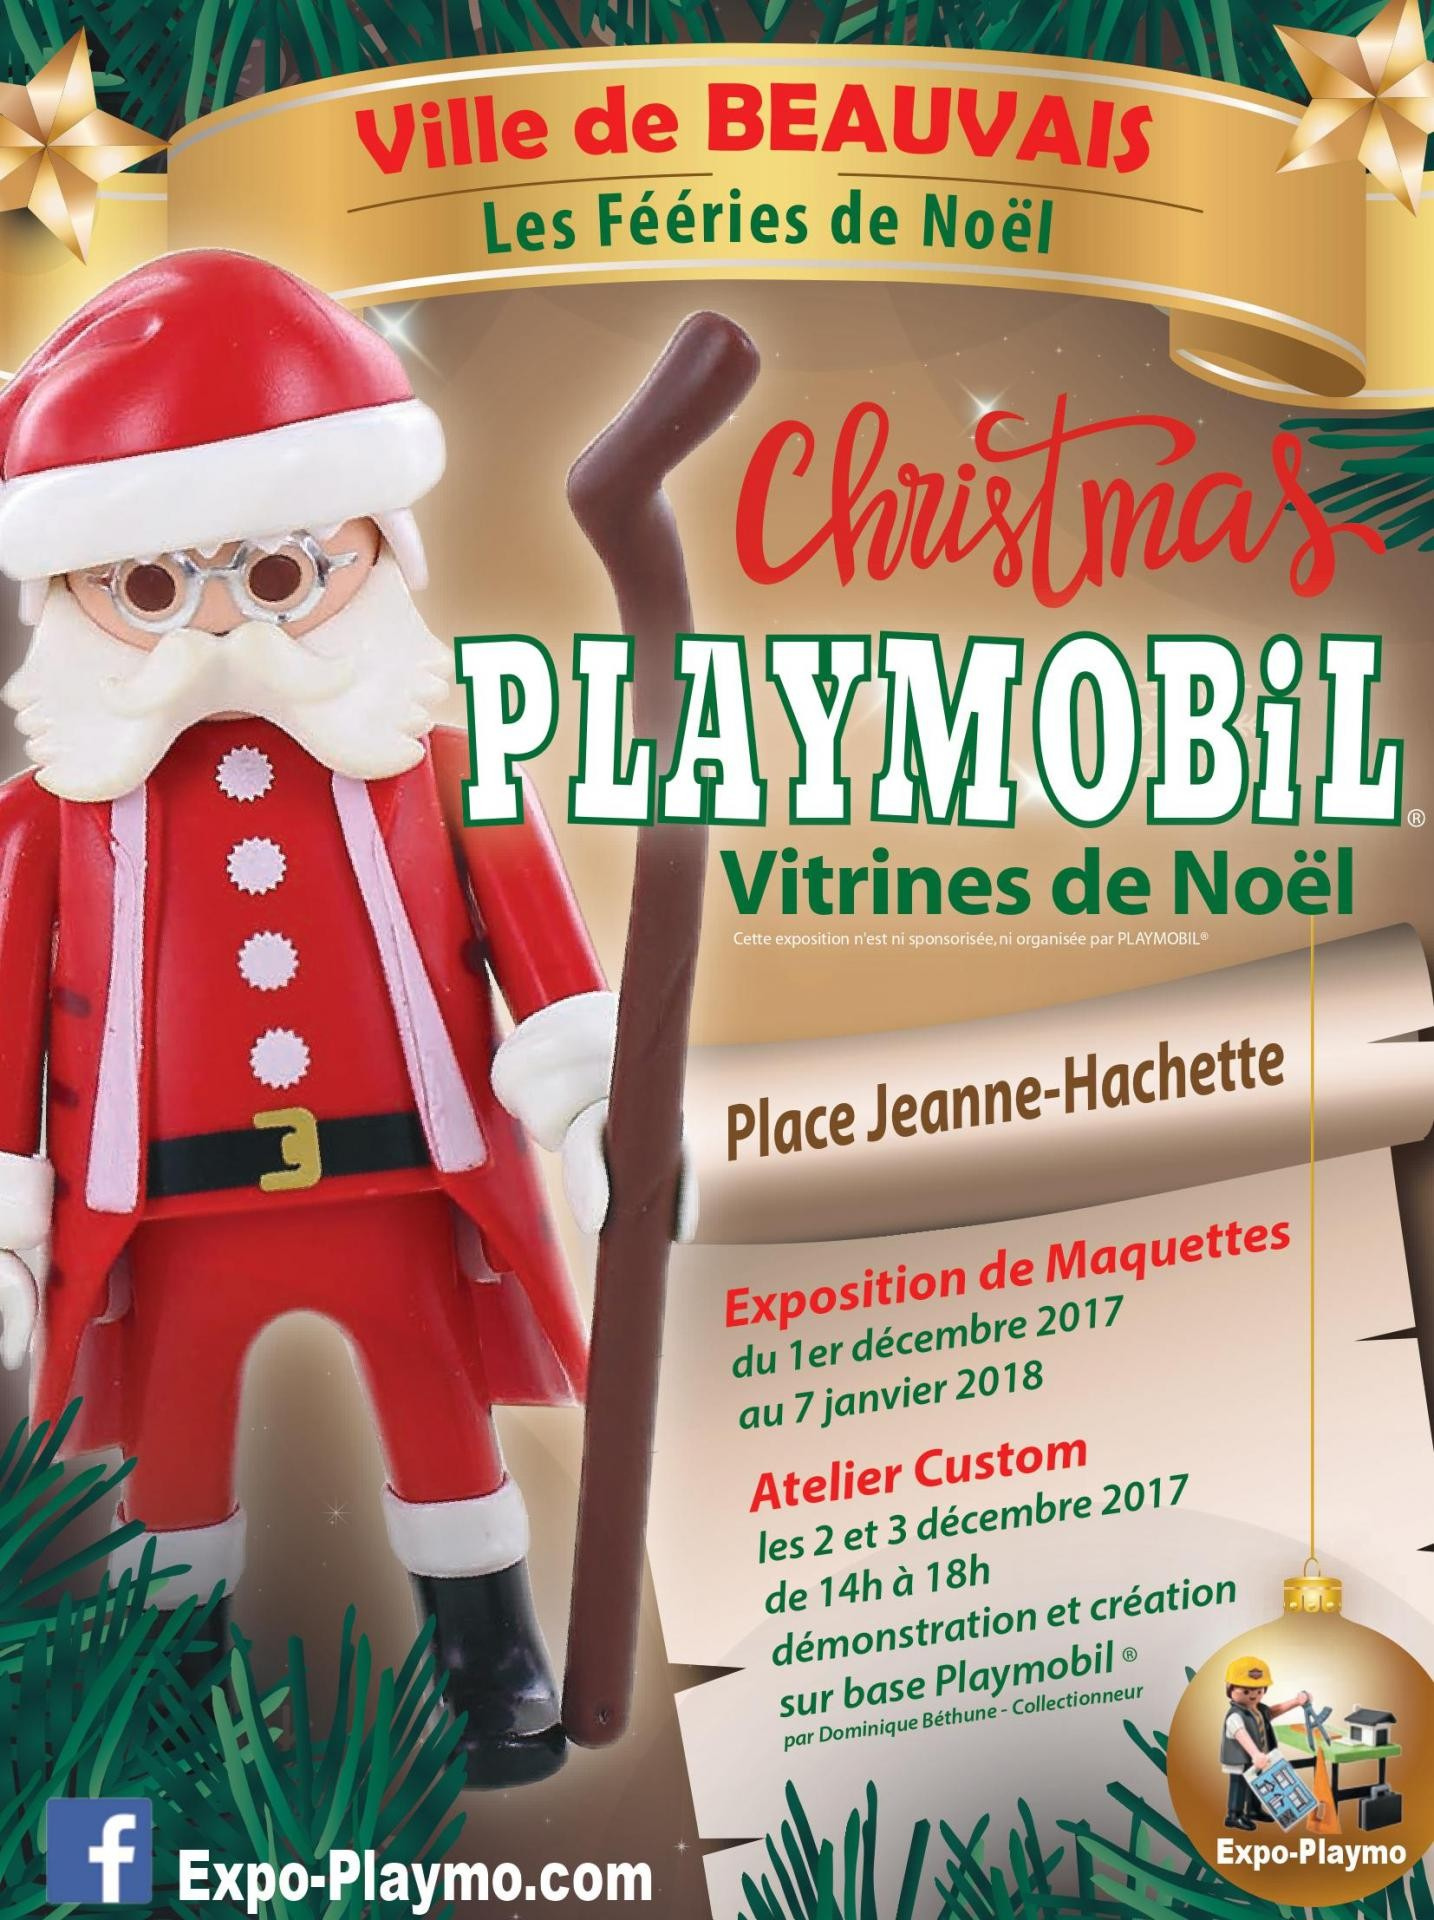 Exposition playmobil beauvais dominique bethune 1